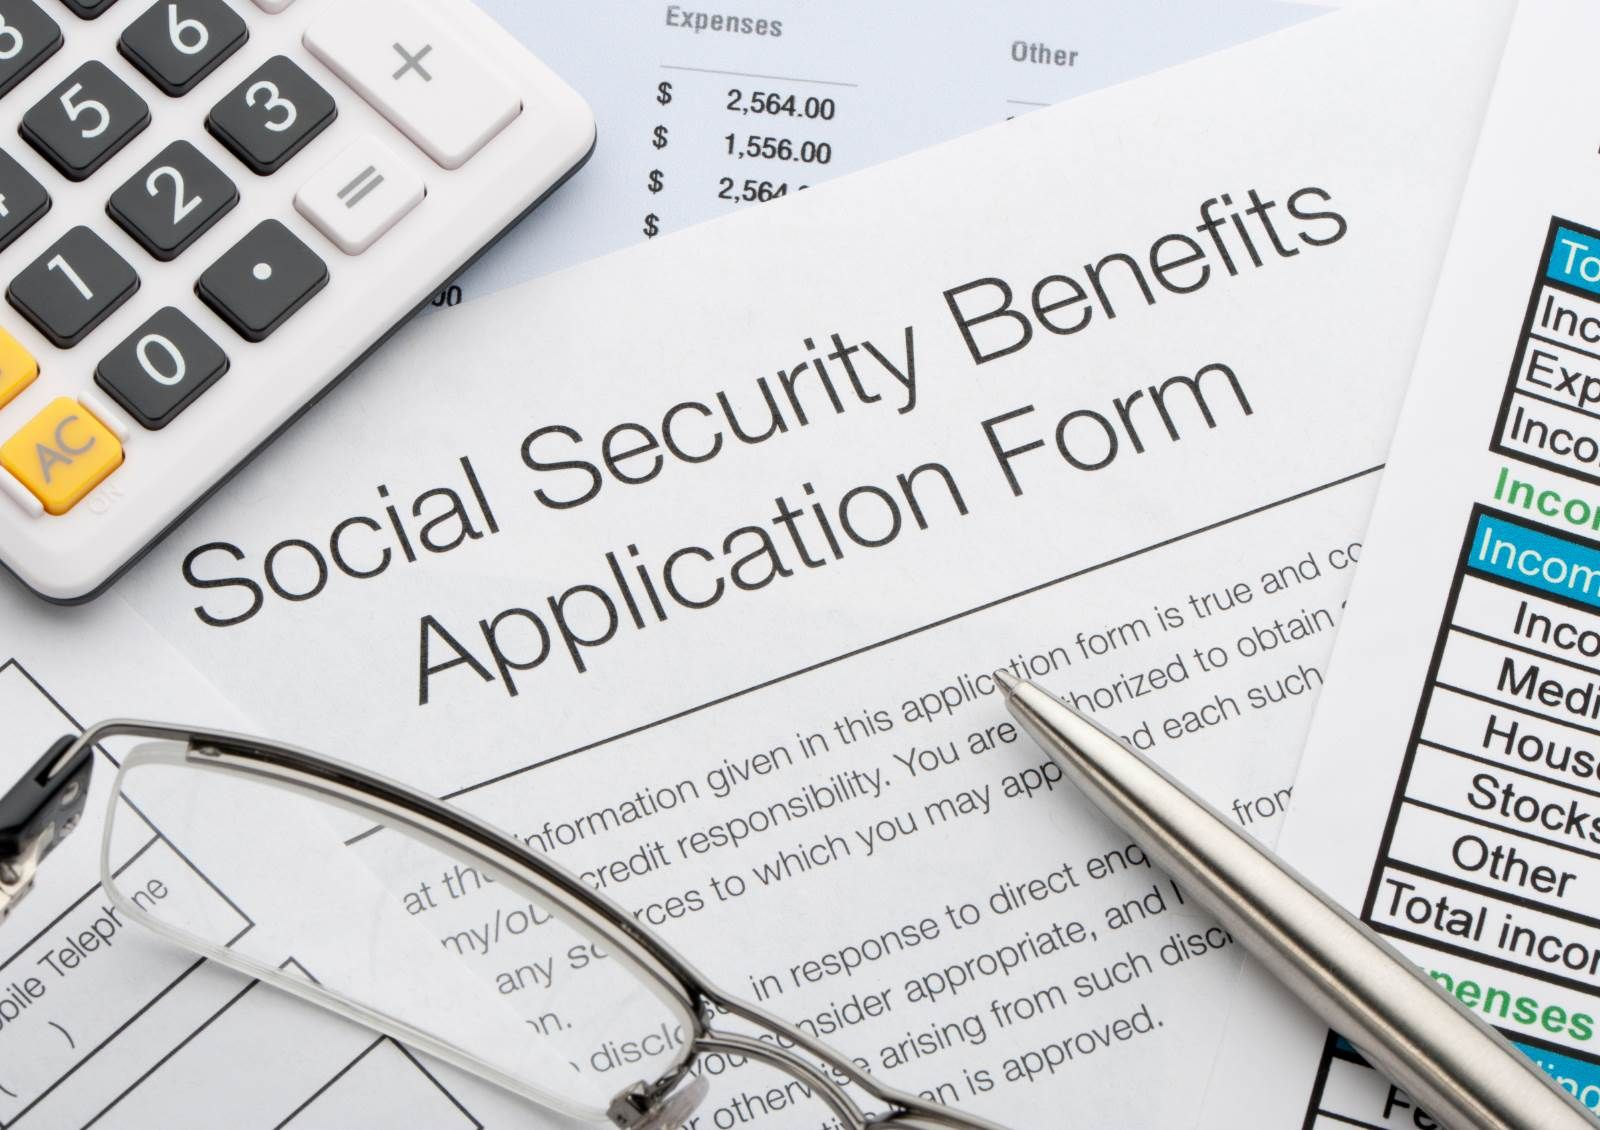 LetS Talk About Ableism Benefits And Social Security